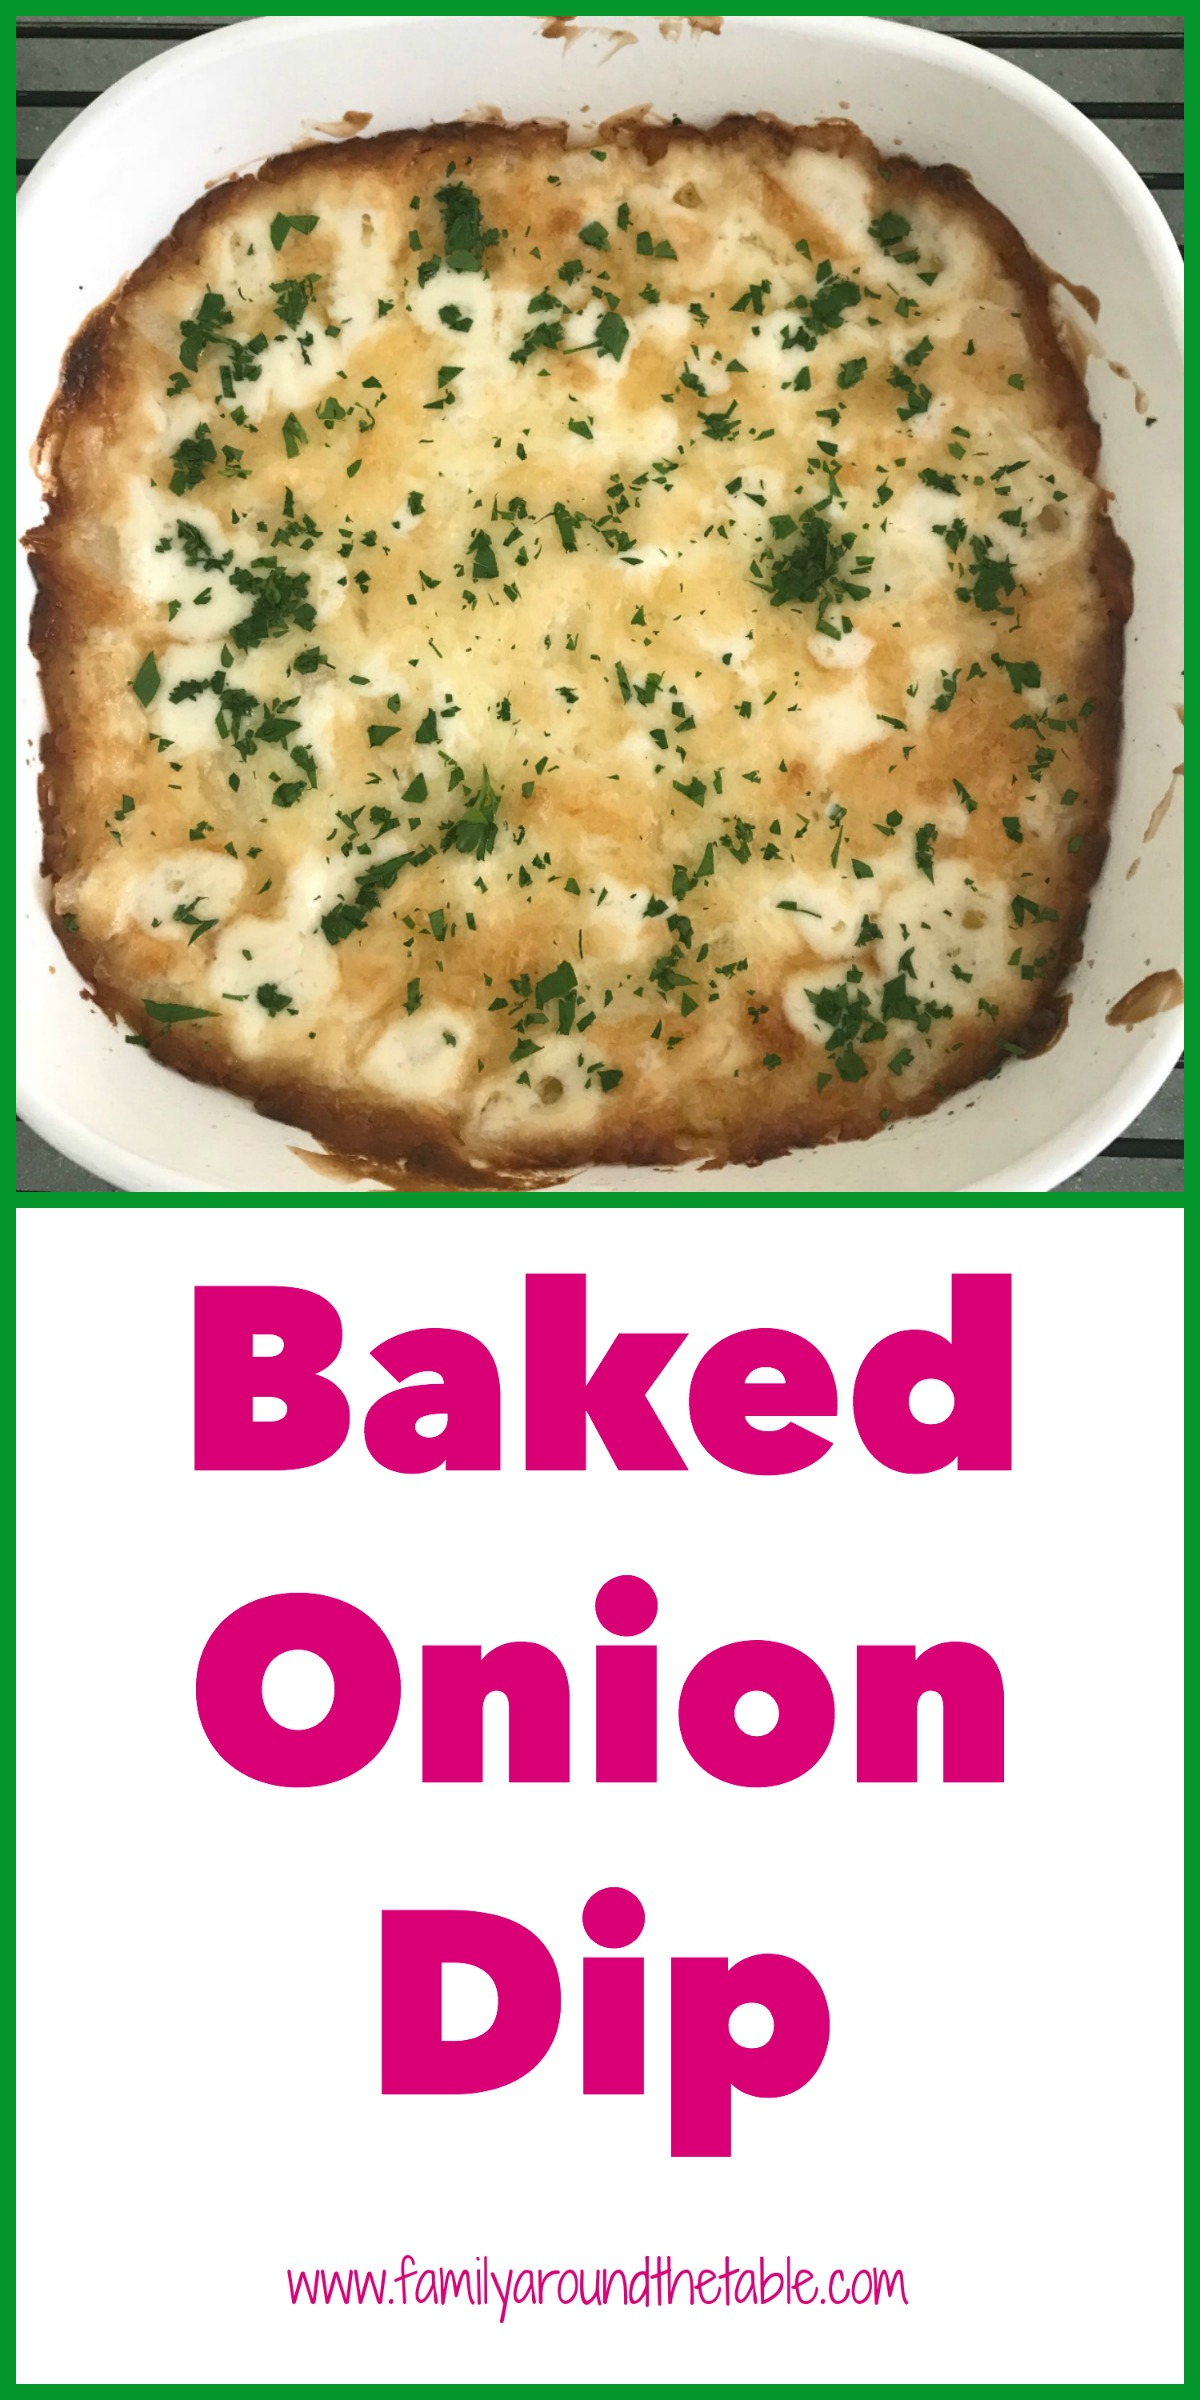 Baked onion dip served before dinner will keep hungry guests happy.